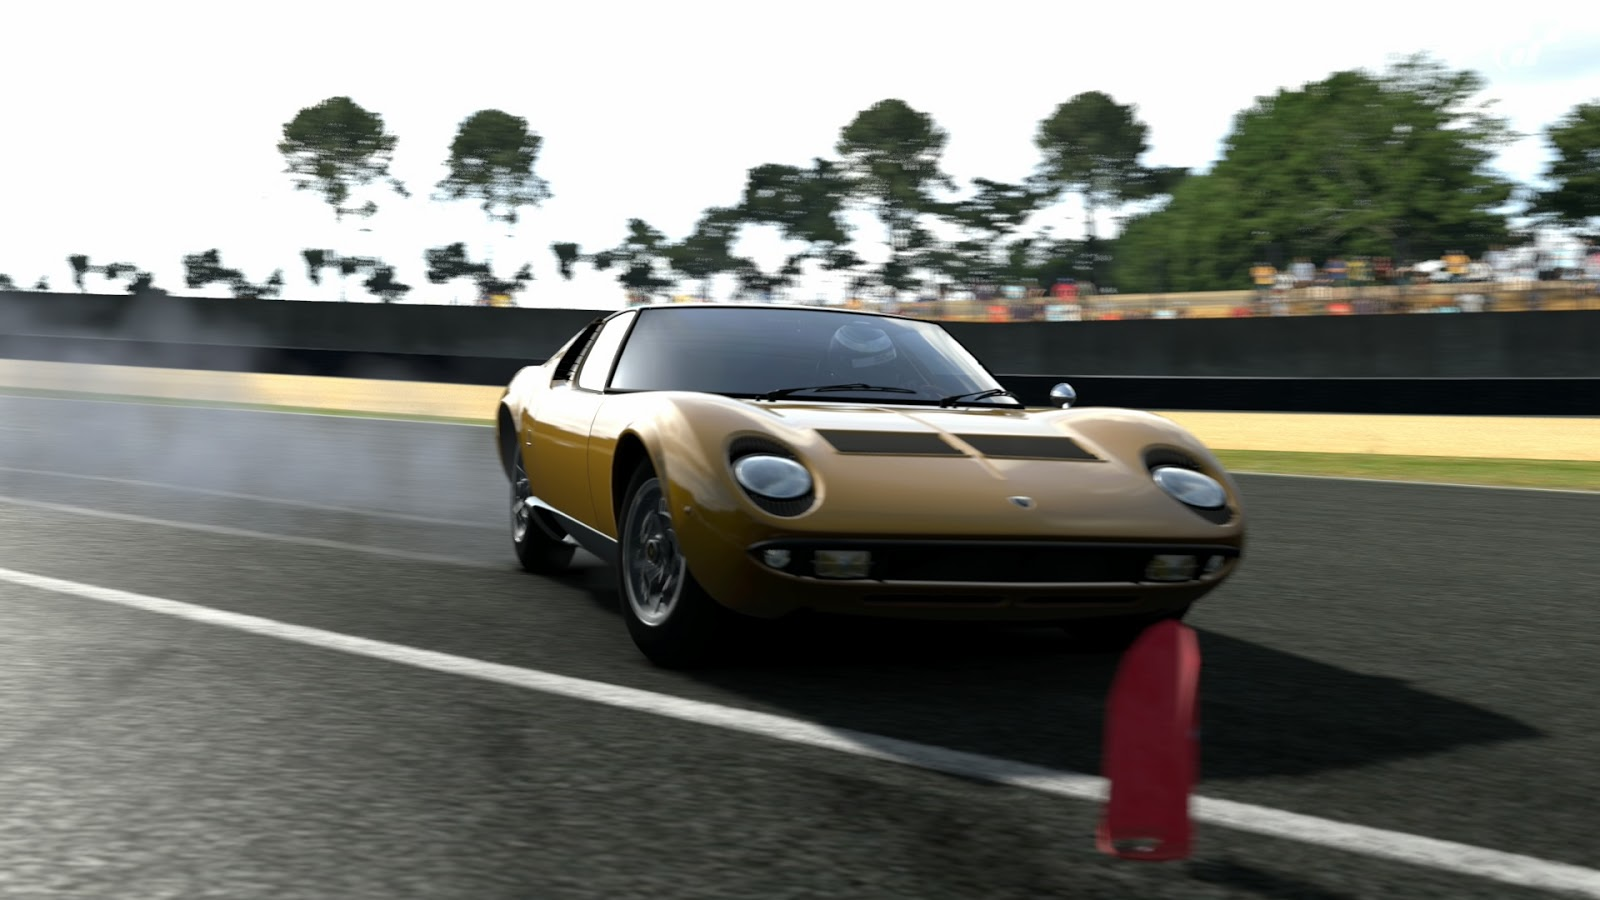 And Then There Are Some Of The Cars Youu0027re Looking At. Here Are 30 Of My  1400+ Photos From GT5: